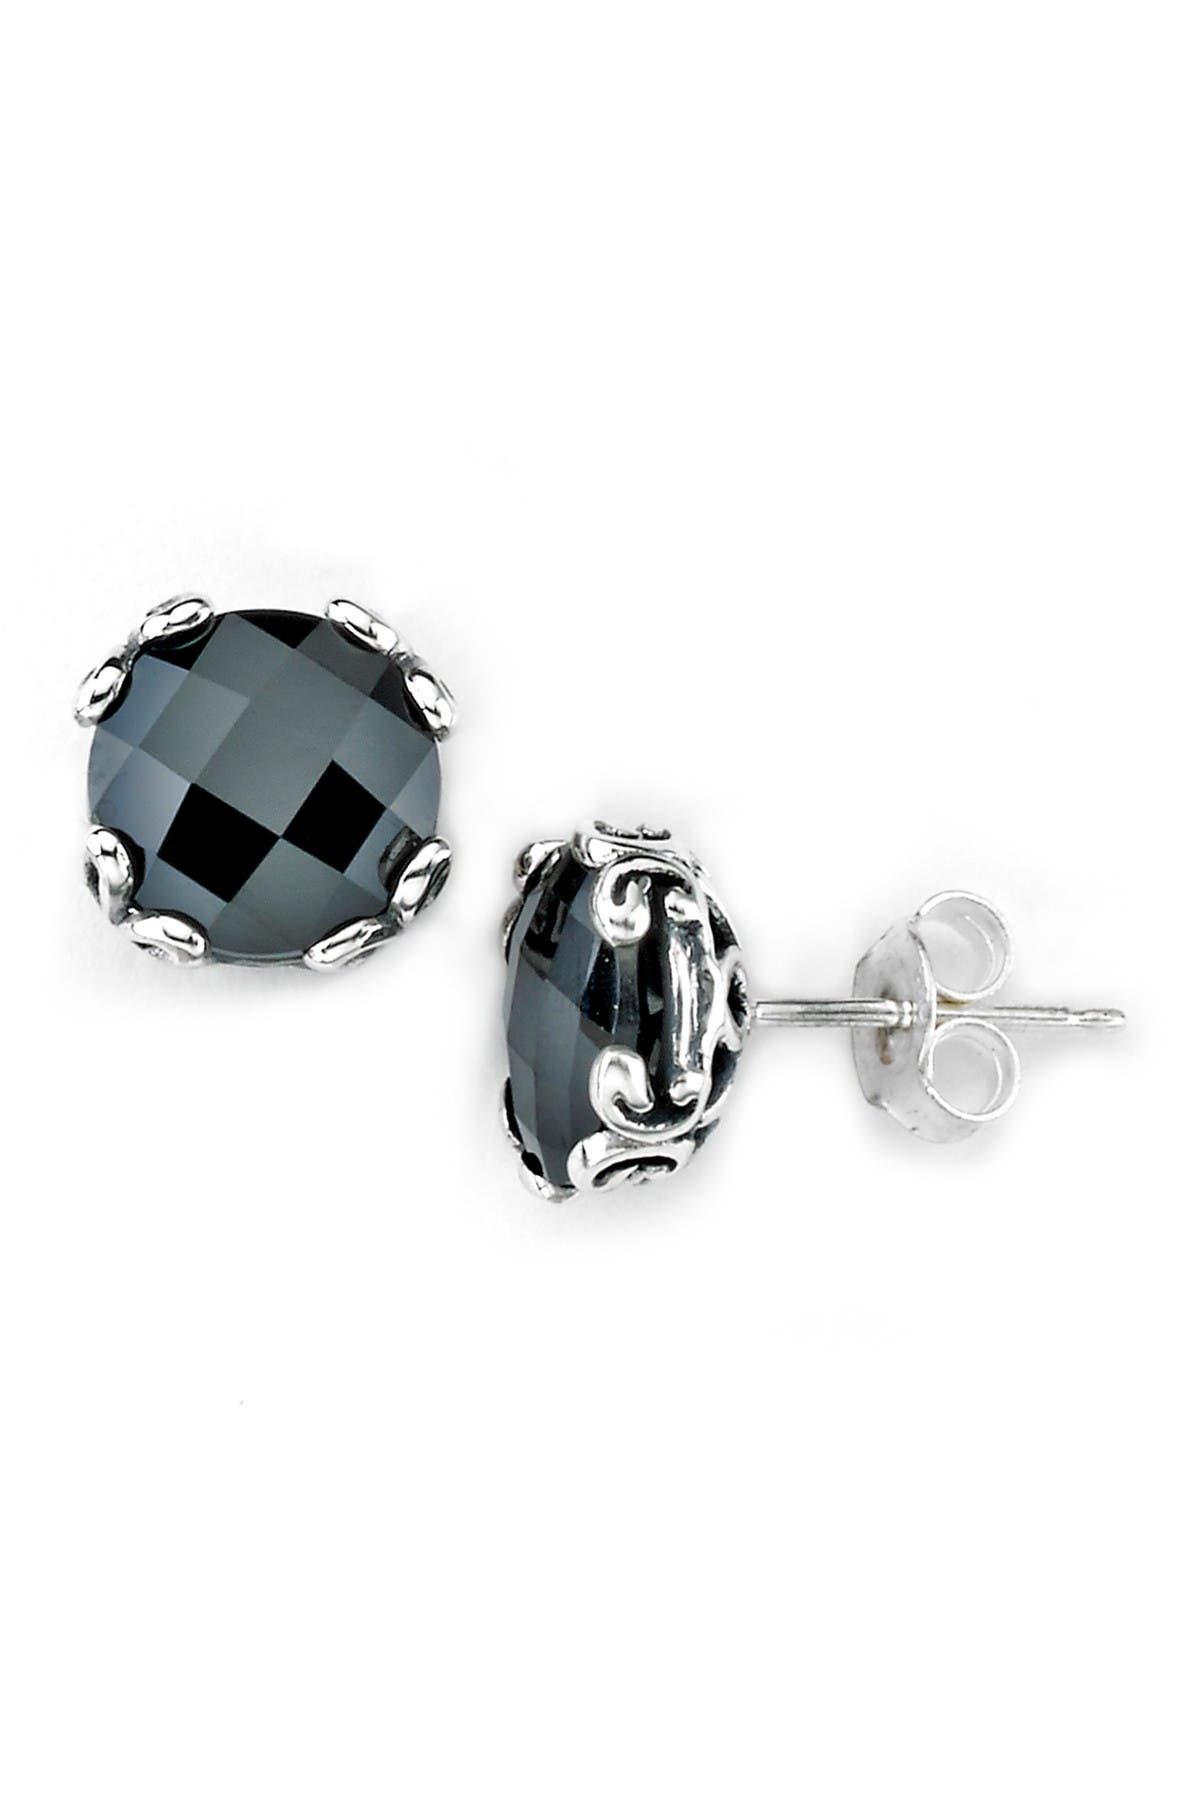 Image of Samuel B Jewelry Sterling Silver Round Black Spinel Stud Earrings